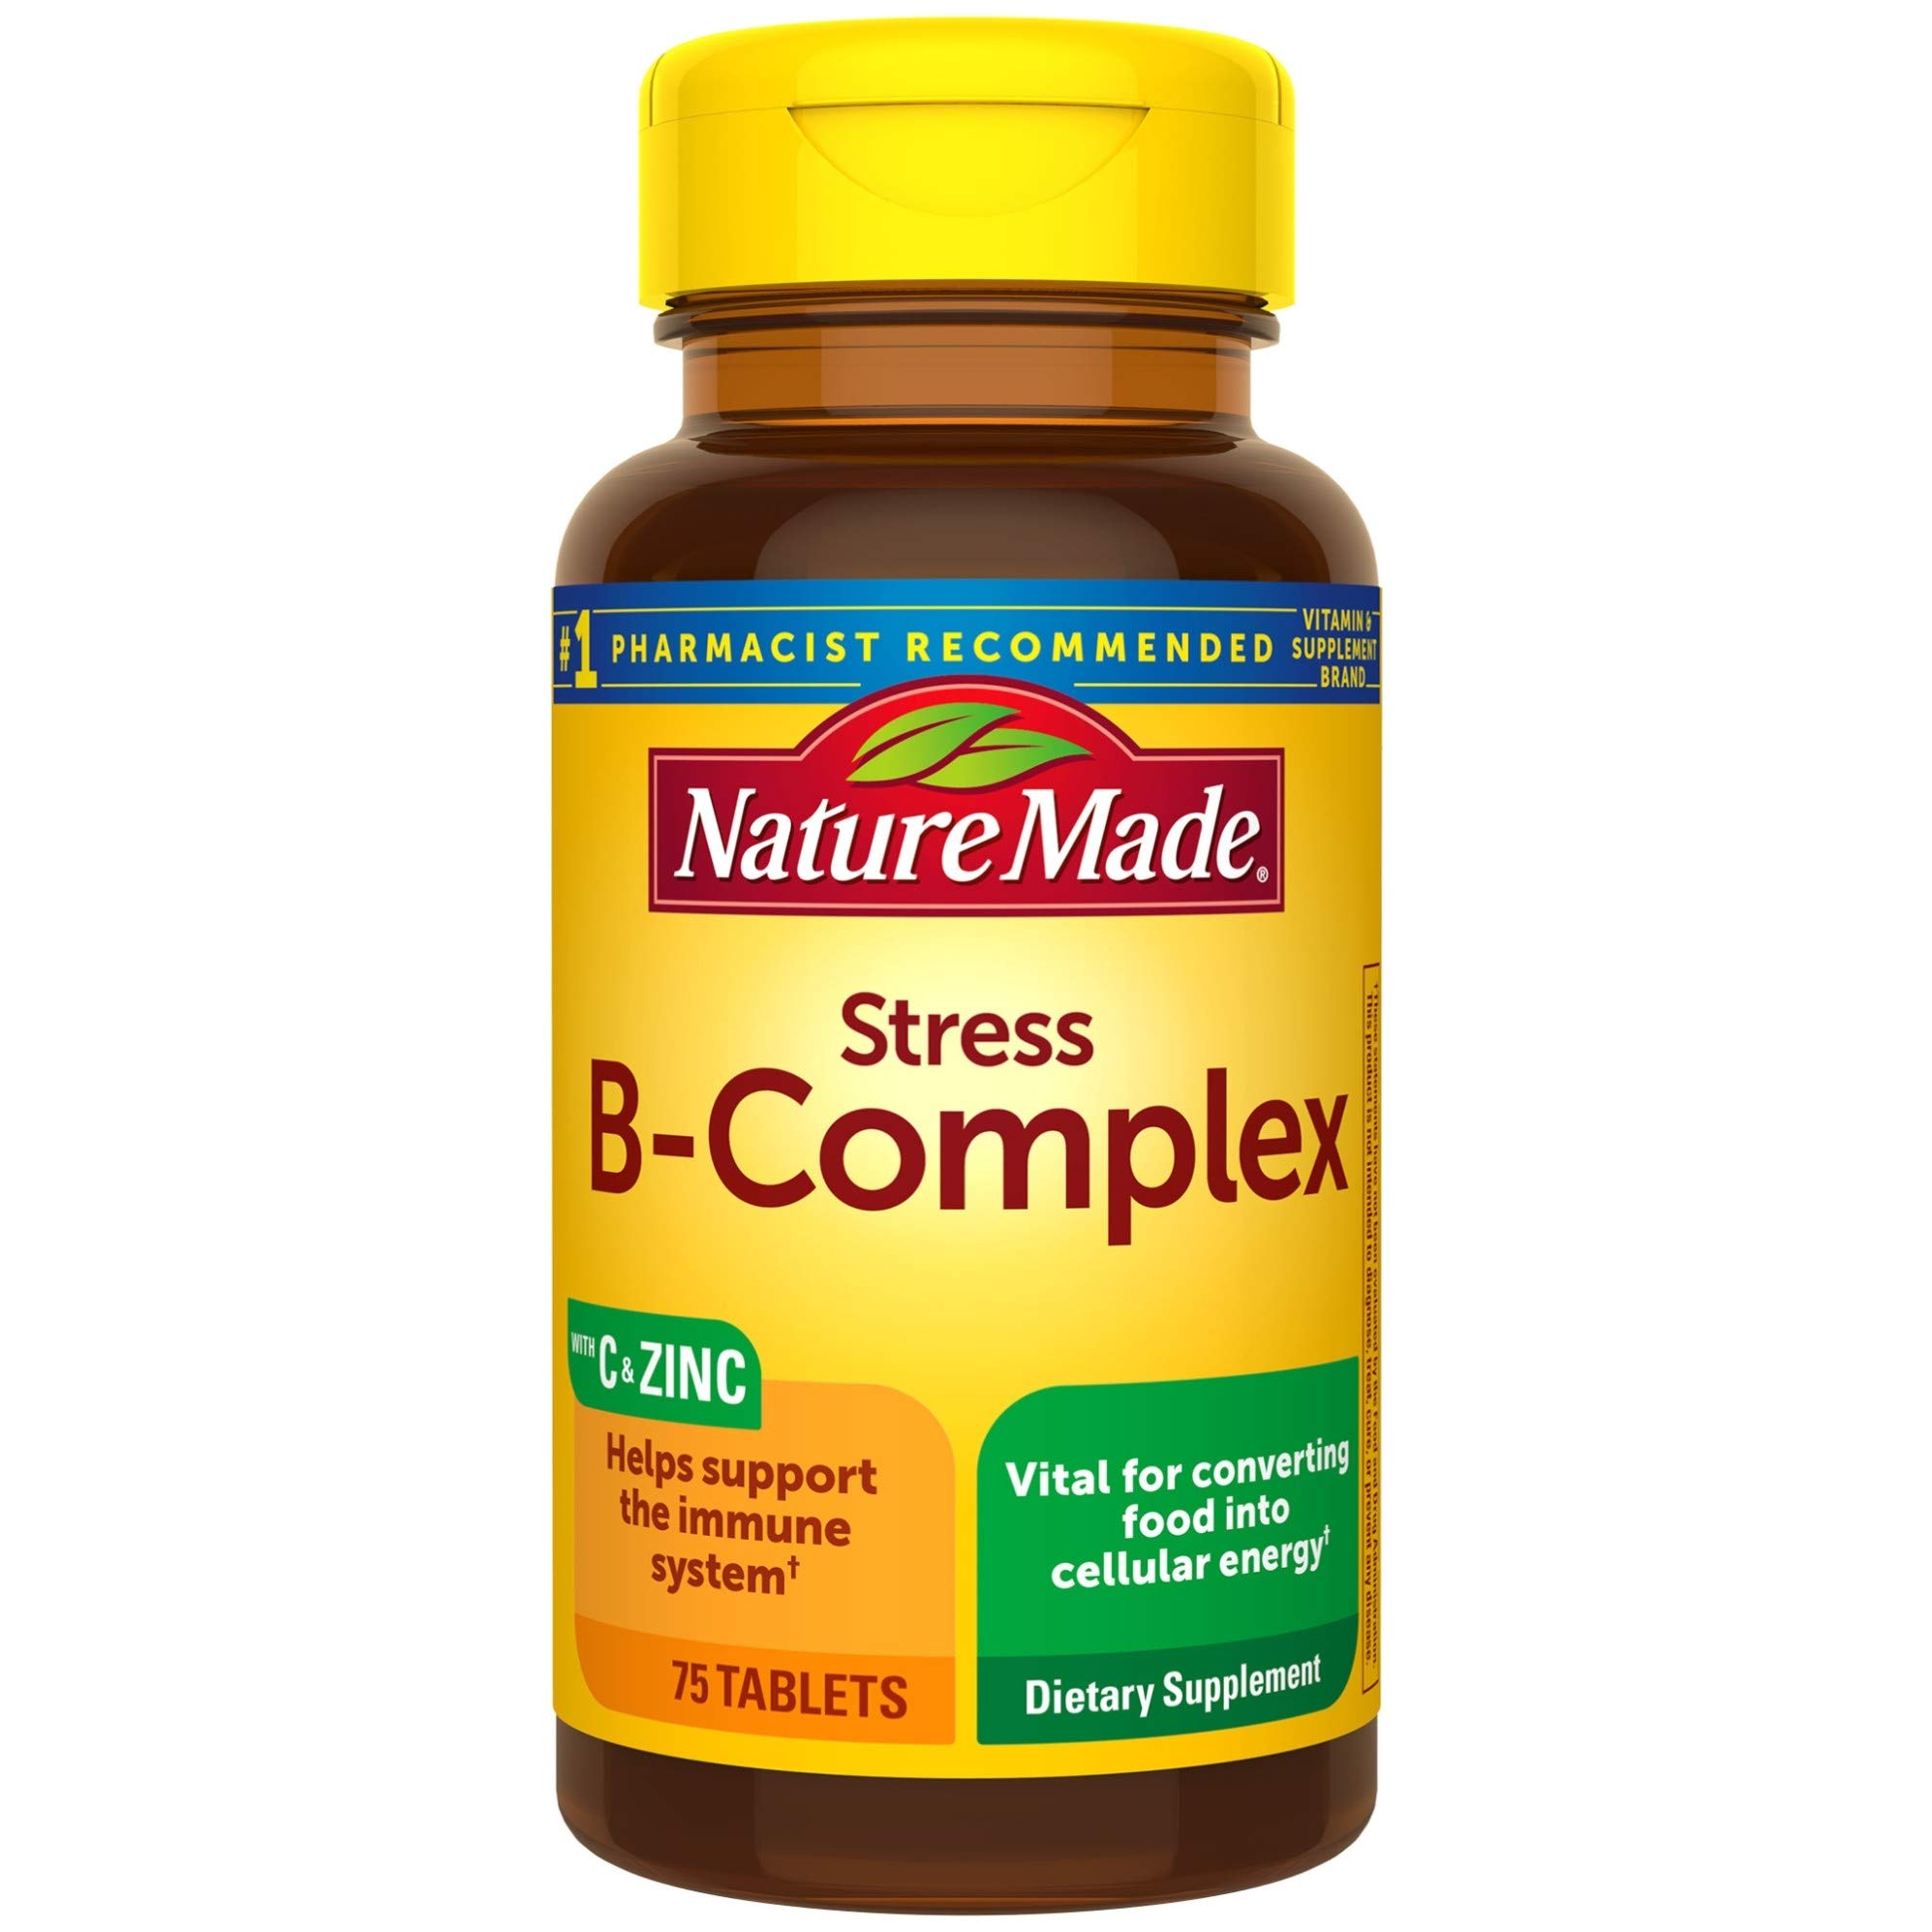 Nature Made Stress B-Complex with Vitamin C and Zinc Tablets, 75 Count